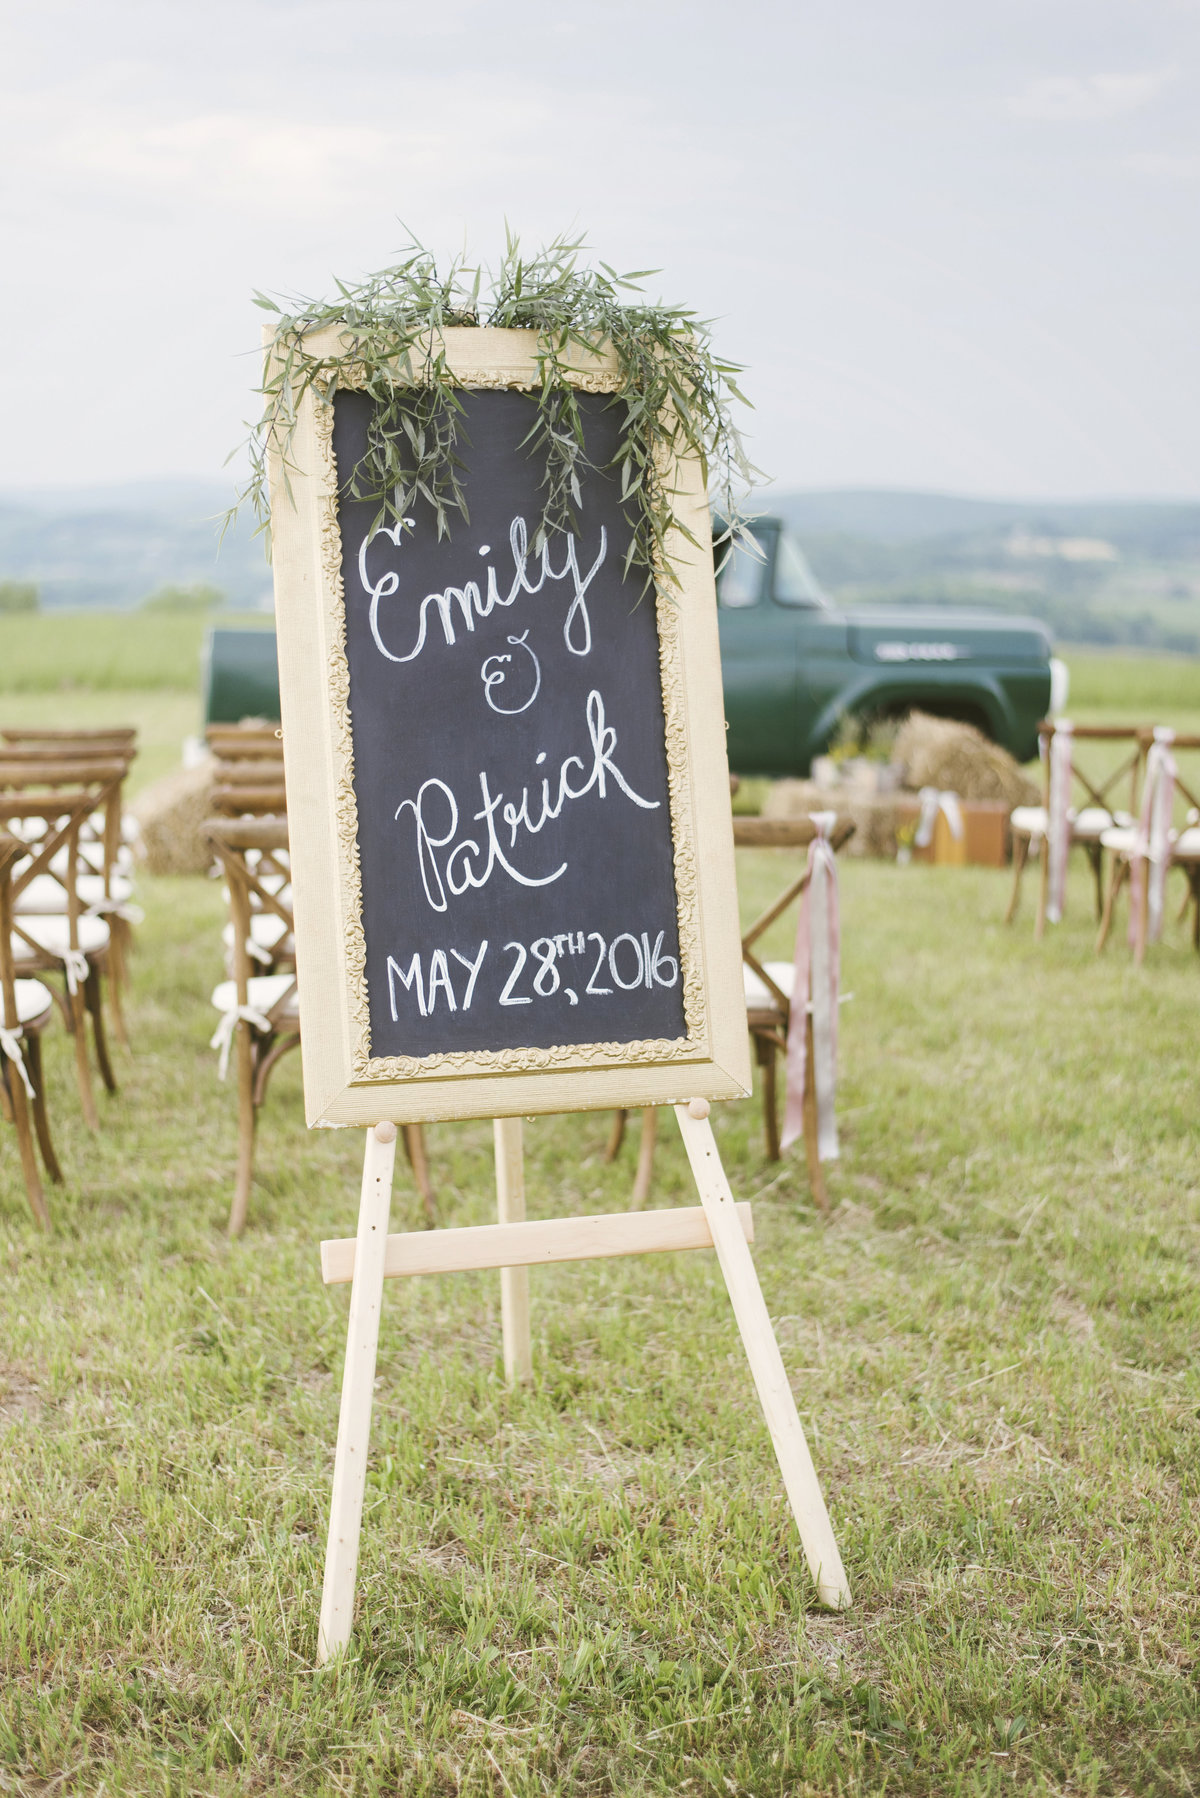 Monica-Relyea-Events-Alicia-King-Photography-Globe-Hill-Ronnybrook-Farm-Hudson-Valley-wedding-shoot-inspiration50